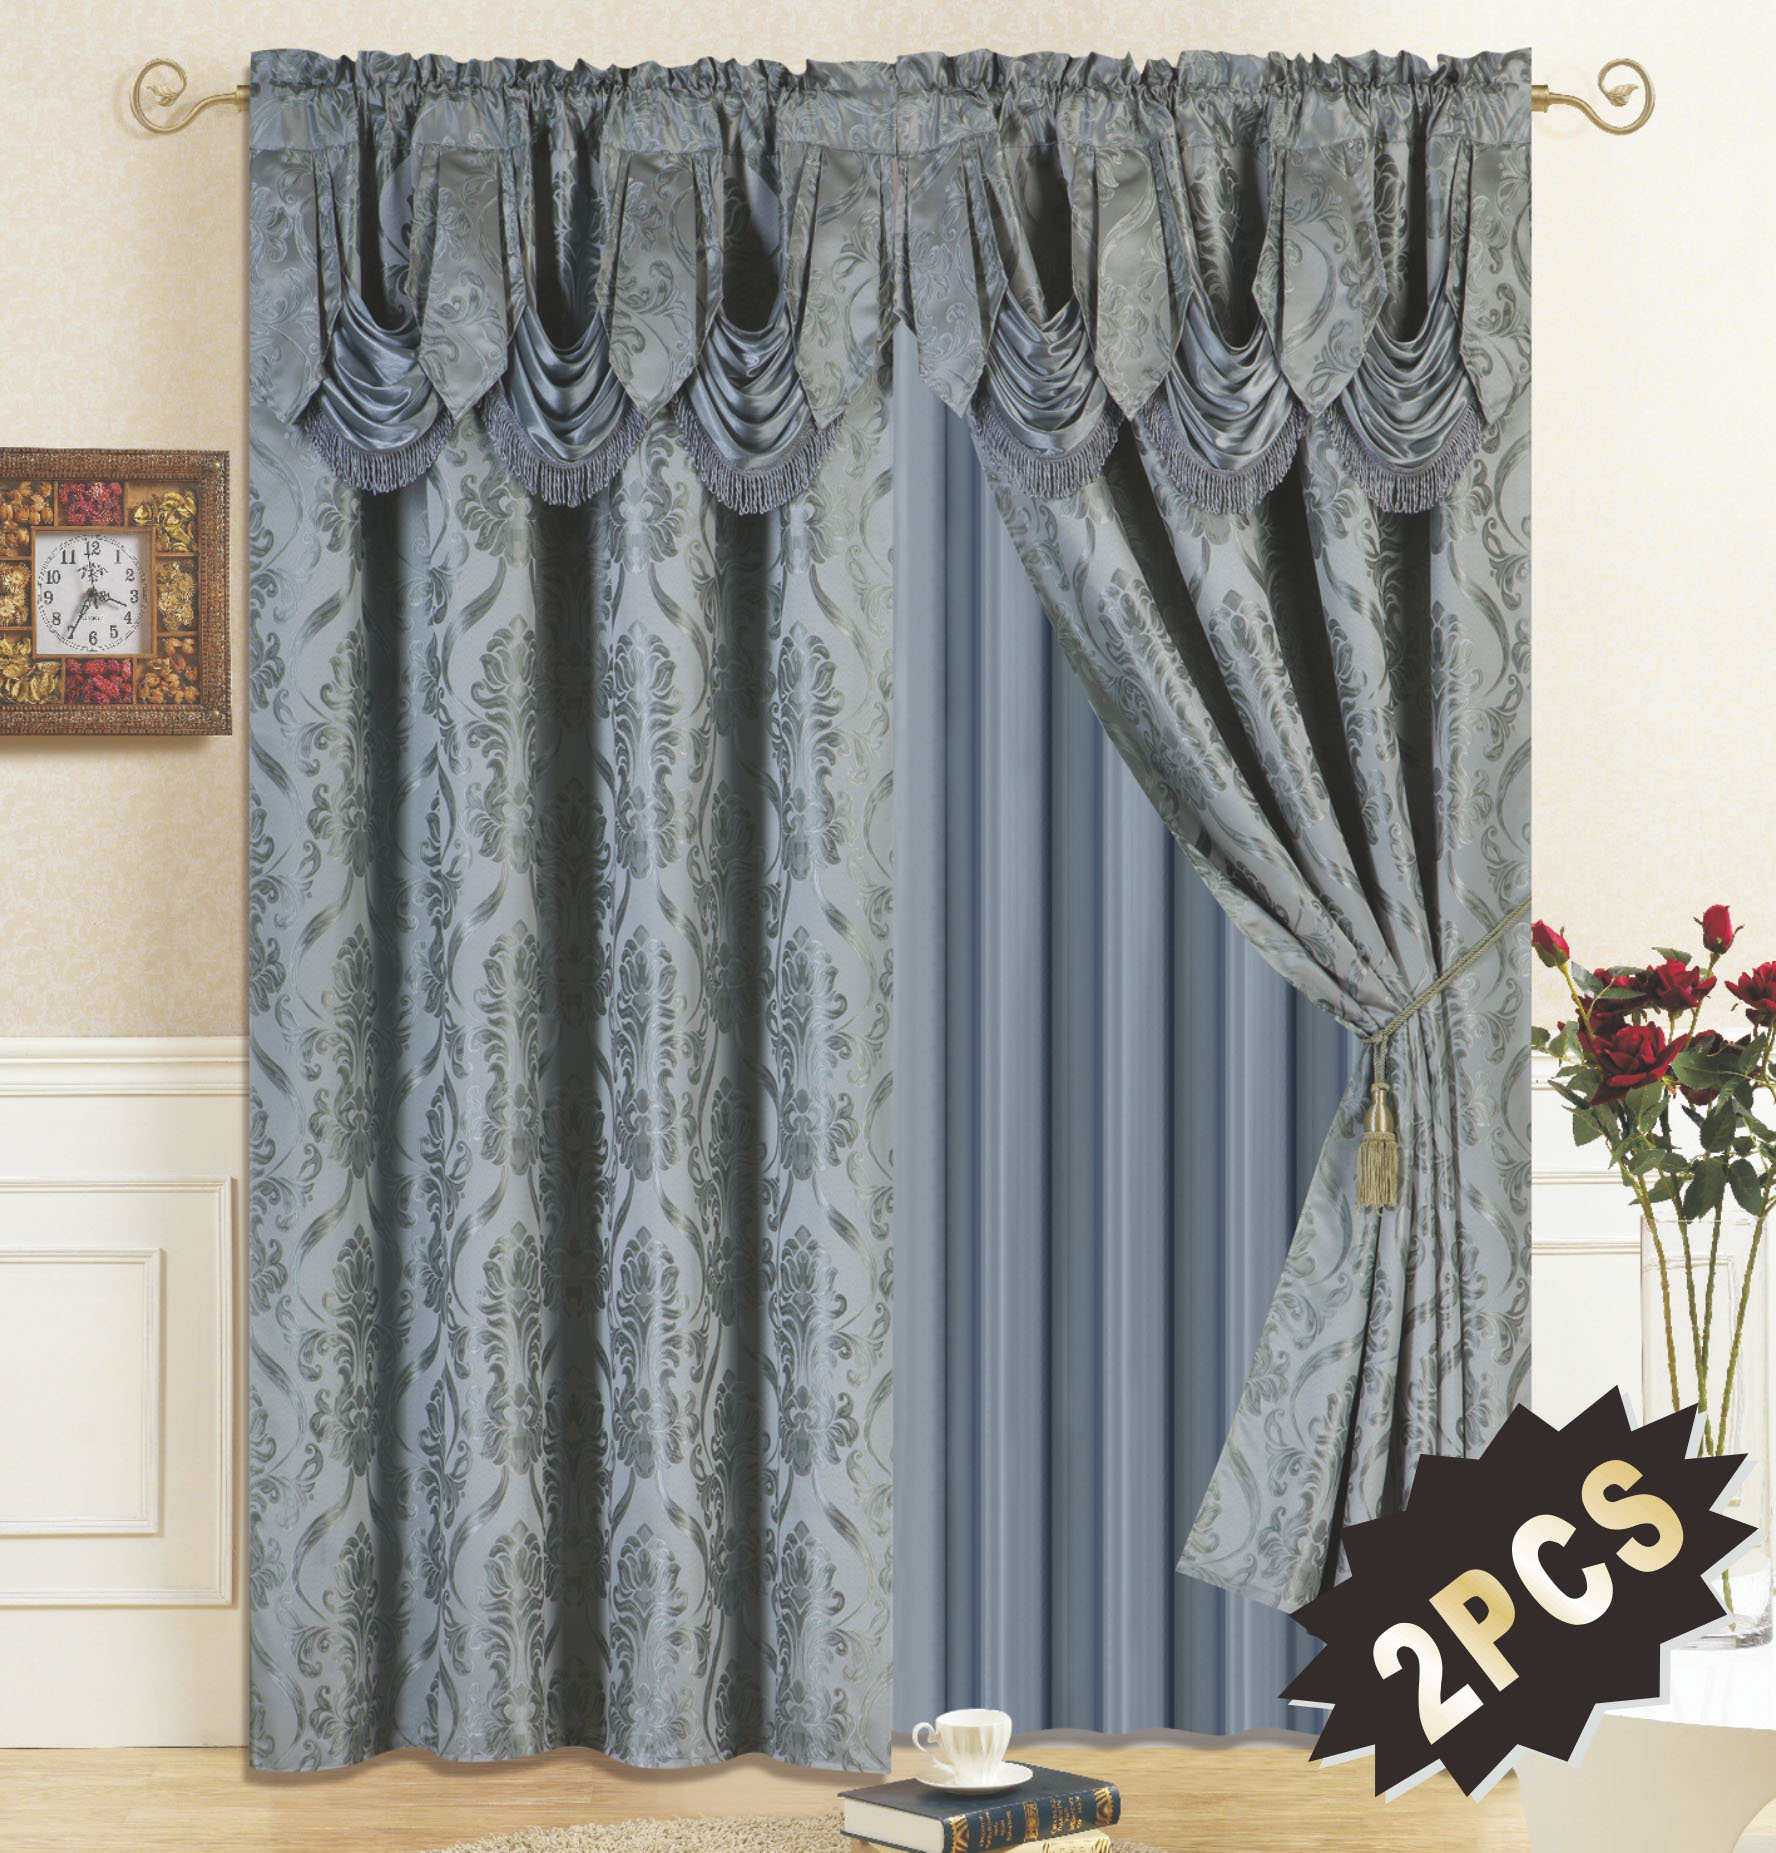 All American Collection New 4 Piece Drape Set with Attached Valance and Sheer with 2 Tie Backs Included